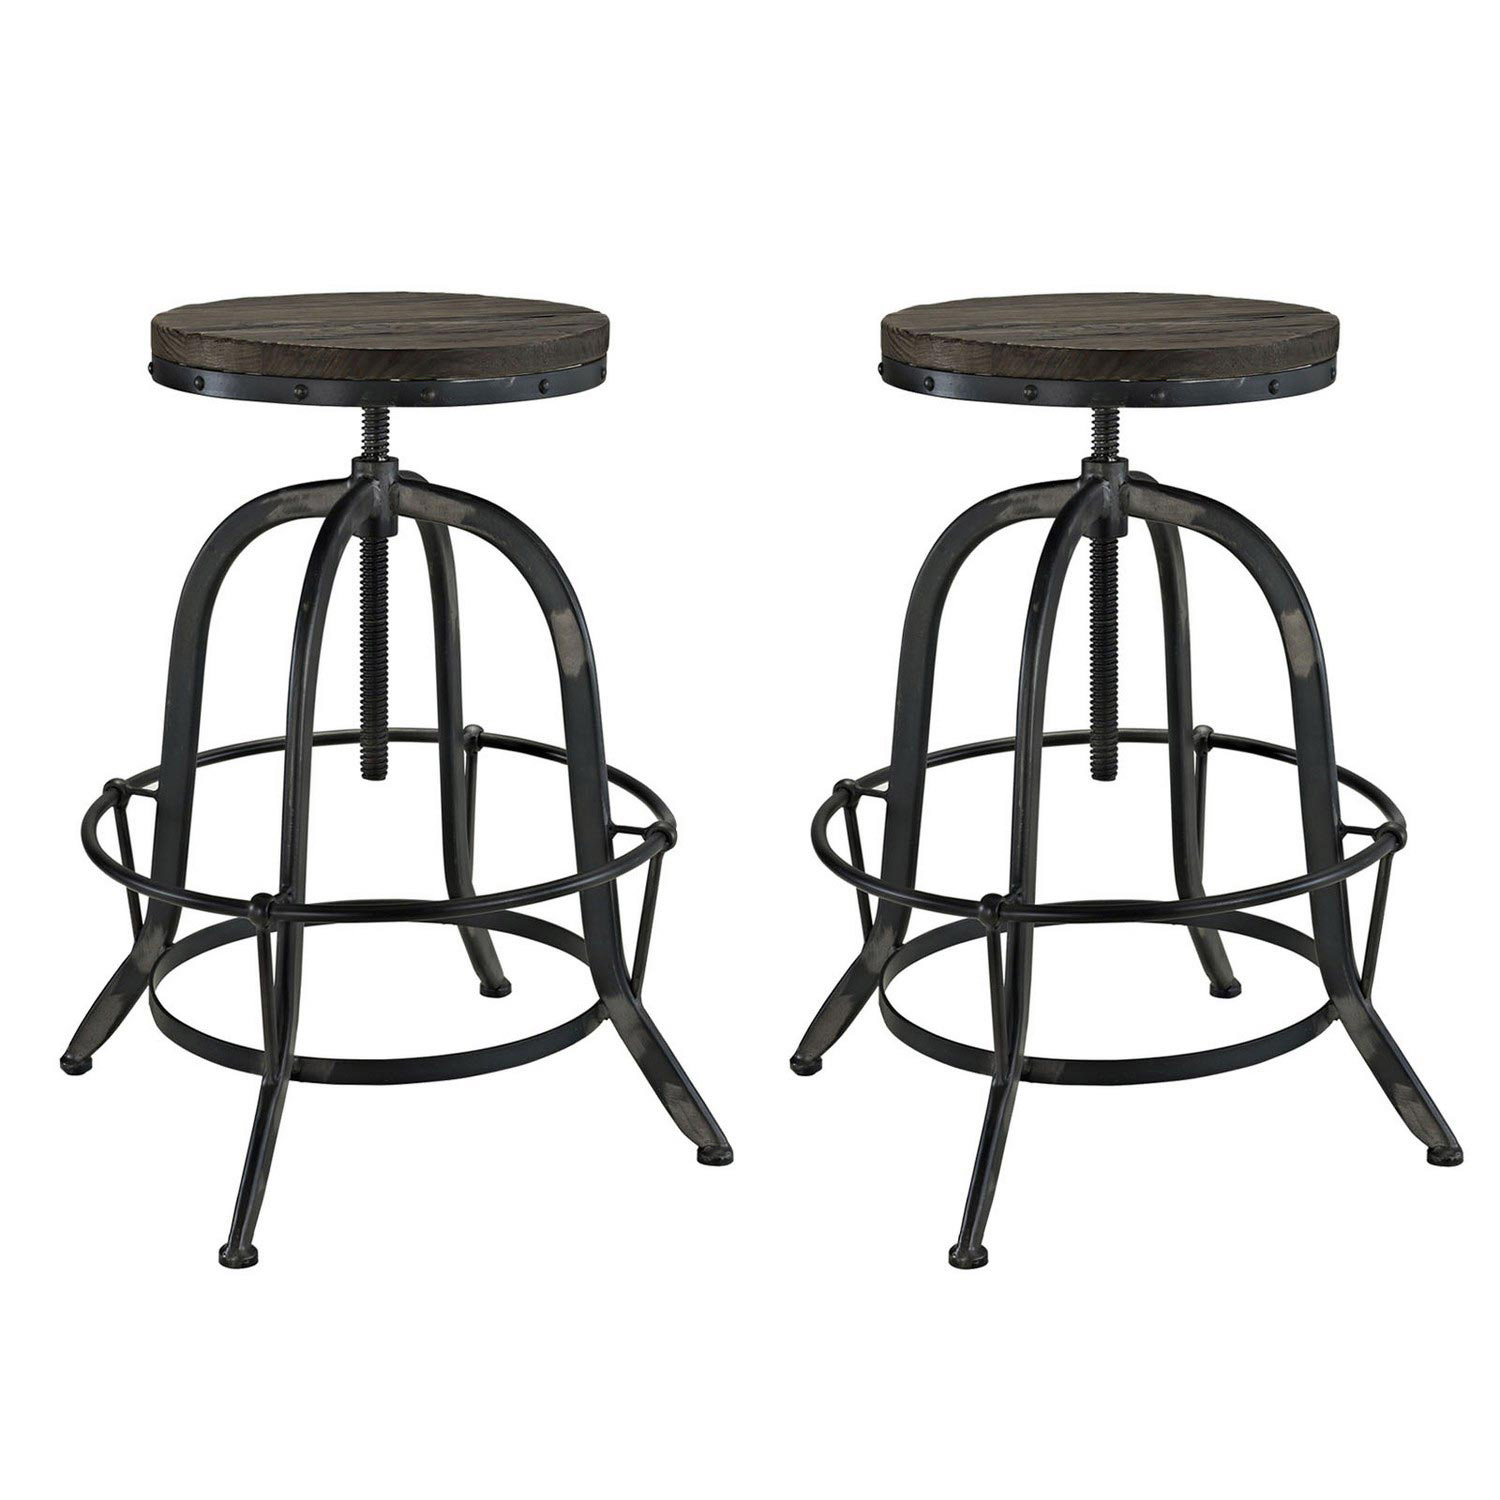 www cedar furniture rustic with Modway Collect Bar Stool Set Of 2 Black Mw Eei 1603 Blk Set P 74489 on Track Lighting Design Ideas moreover 4 Tier Plant Stand Screen Contemporary Outdoor Pots And Planters furthermore Log Home Floor Plans With Loft in addition Chalk It Up Paint Gal in addition Wrought Iron Customizable Pine Trees House Plaque Hp 20.